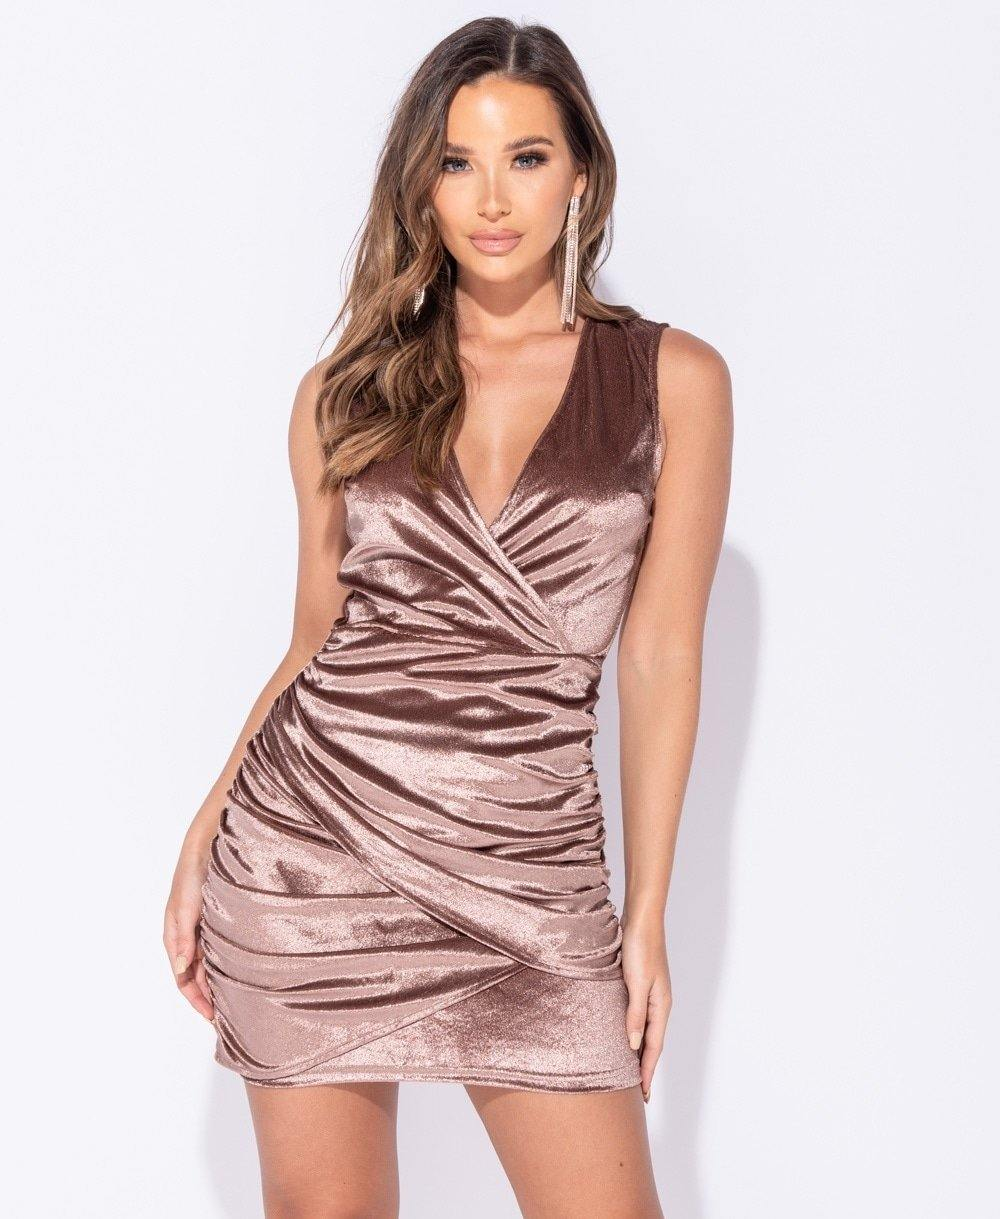 Velvet, sleeveless, mini dress in rose color